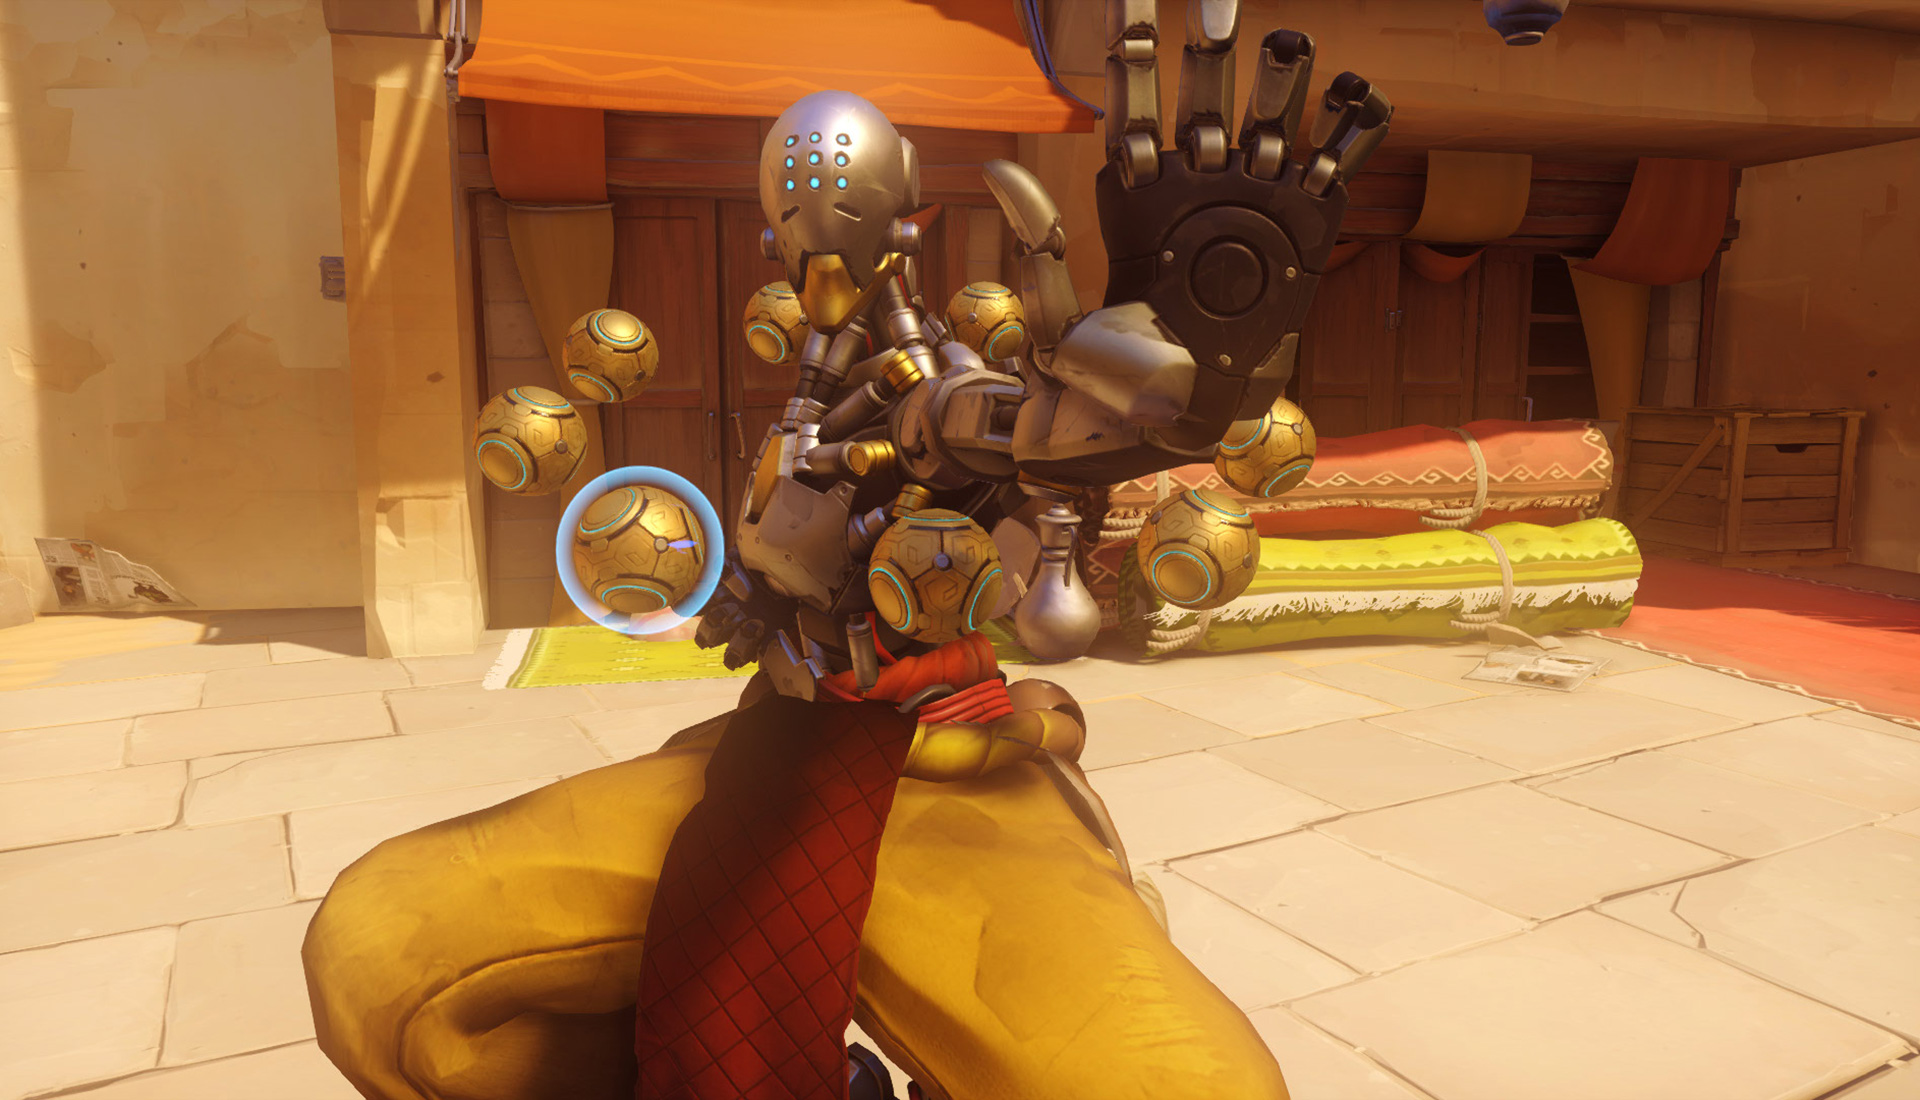 zenyatta screenshot 008 - Is Overwatch's Mercy Underpowered and Does it Affect the Game's Balancing?